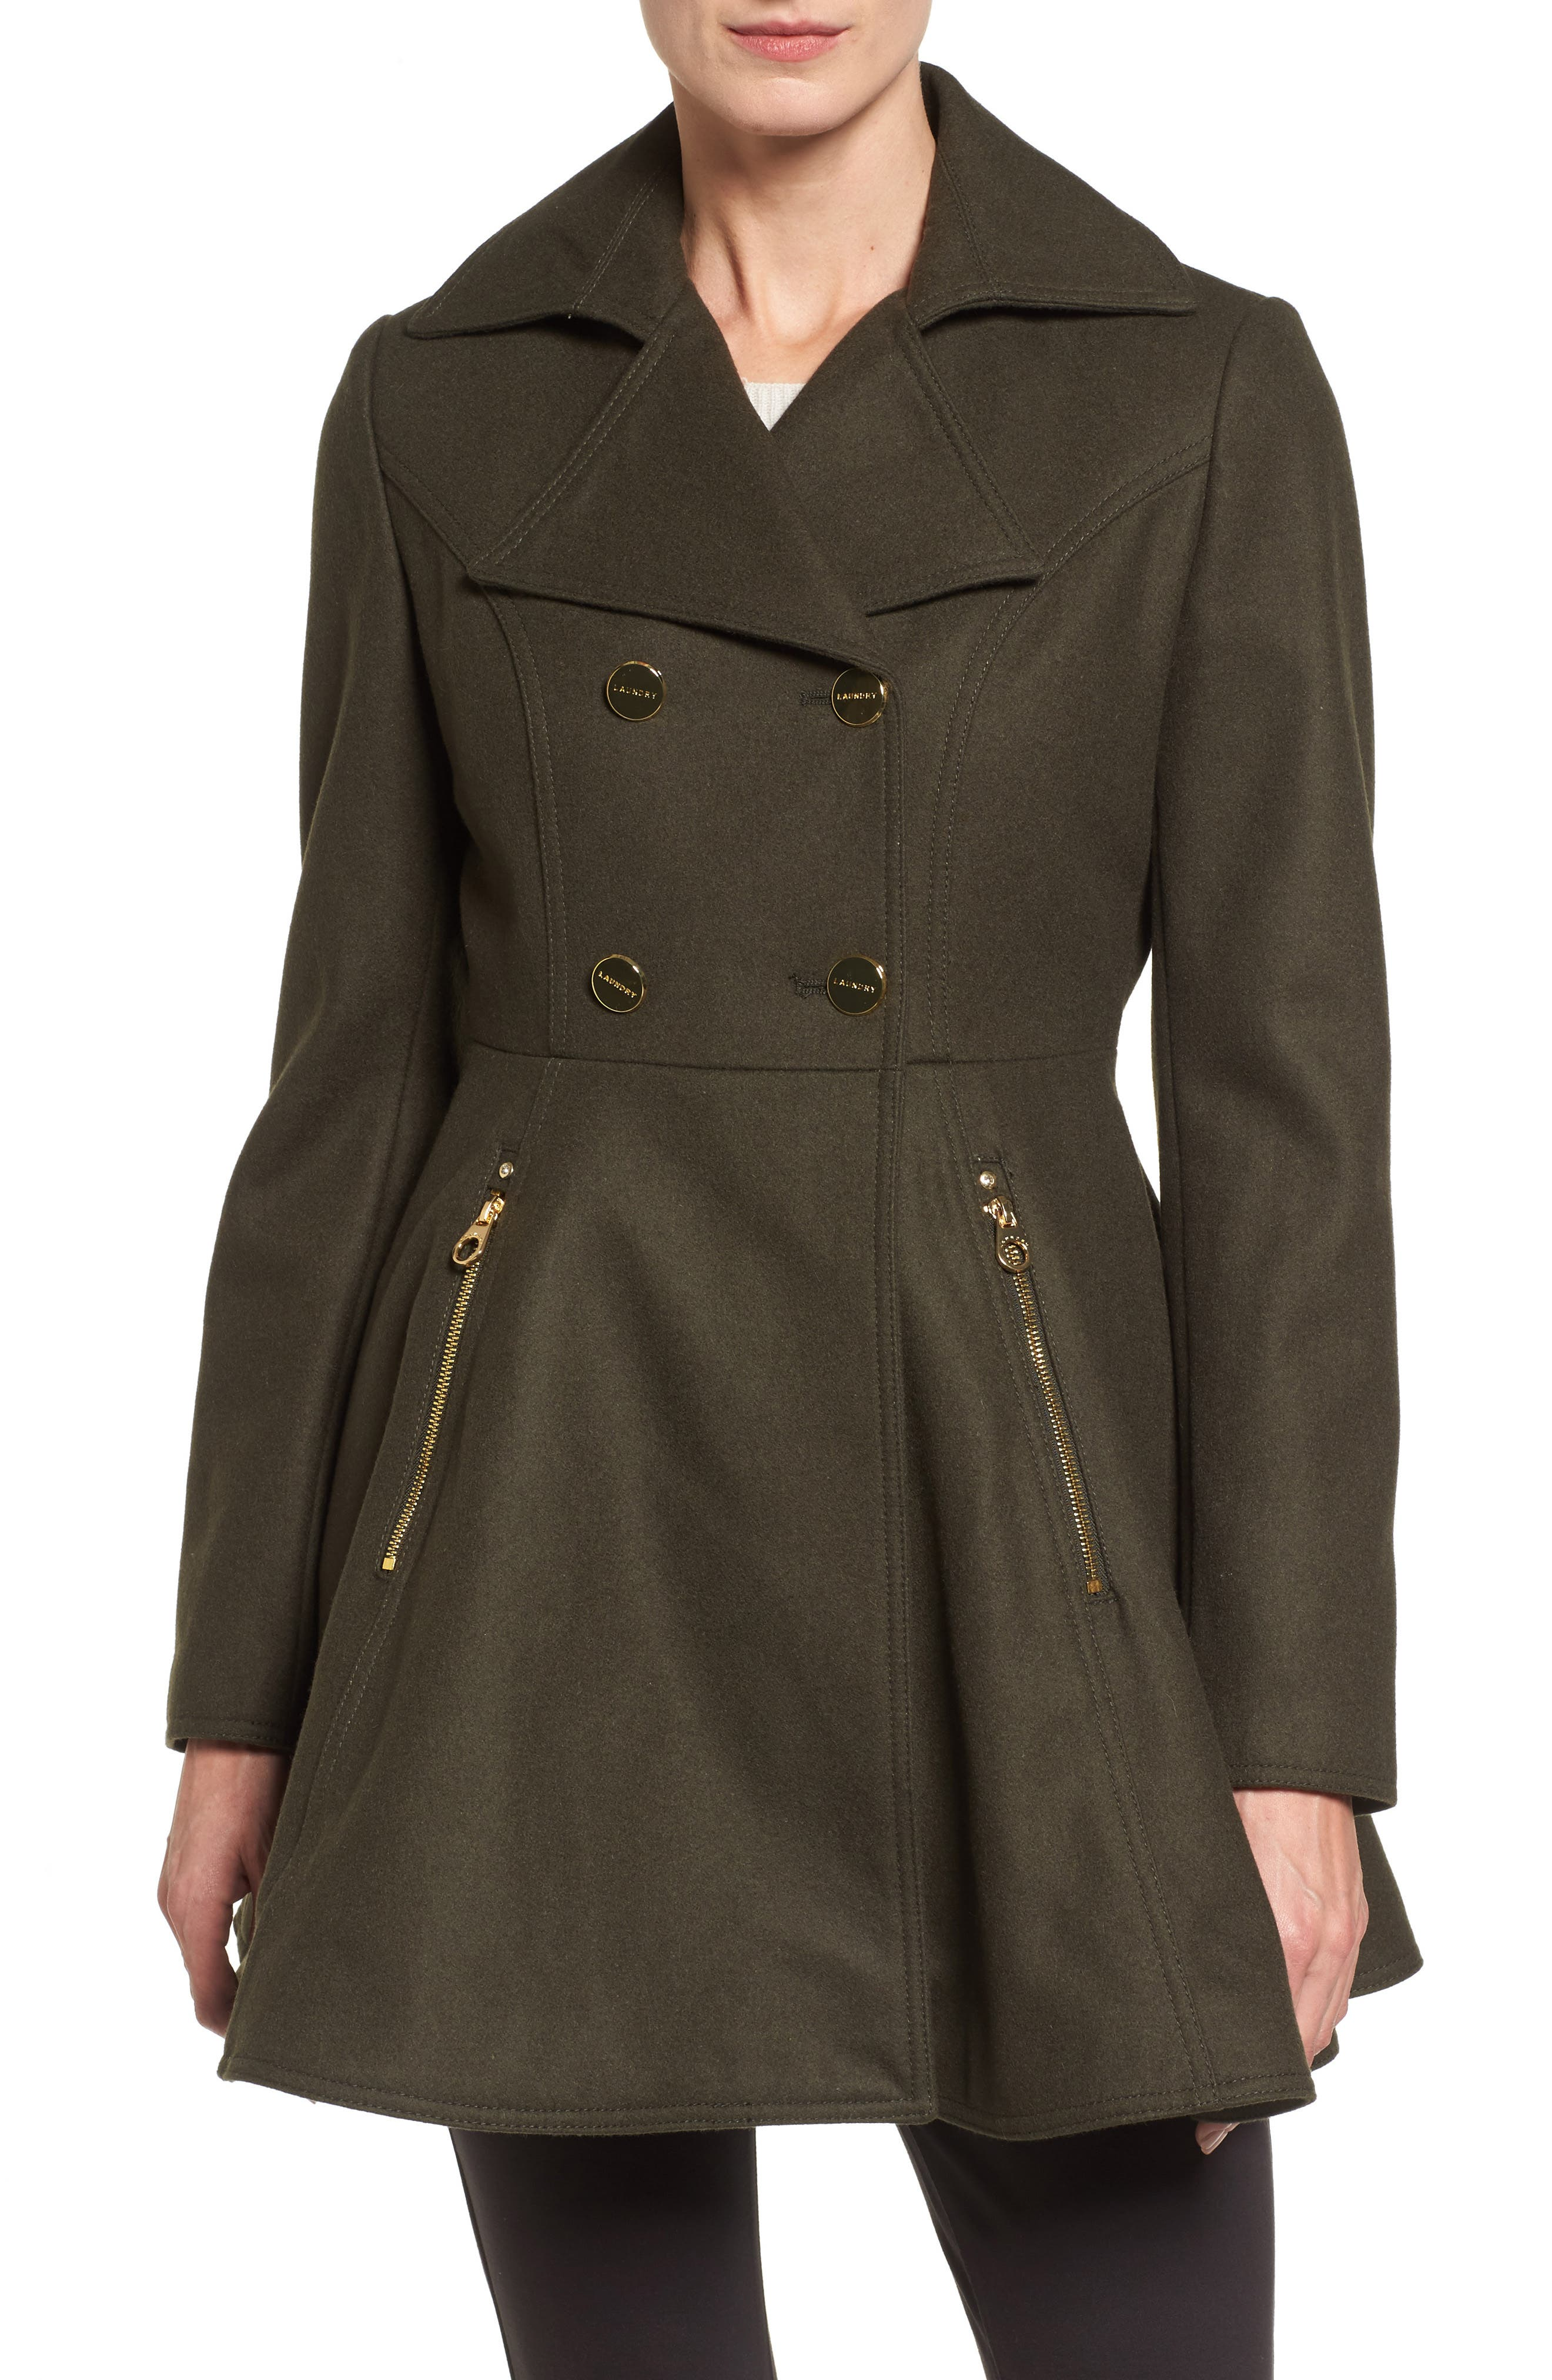 Women's double breasted military coat uk